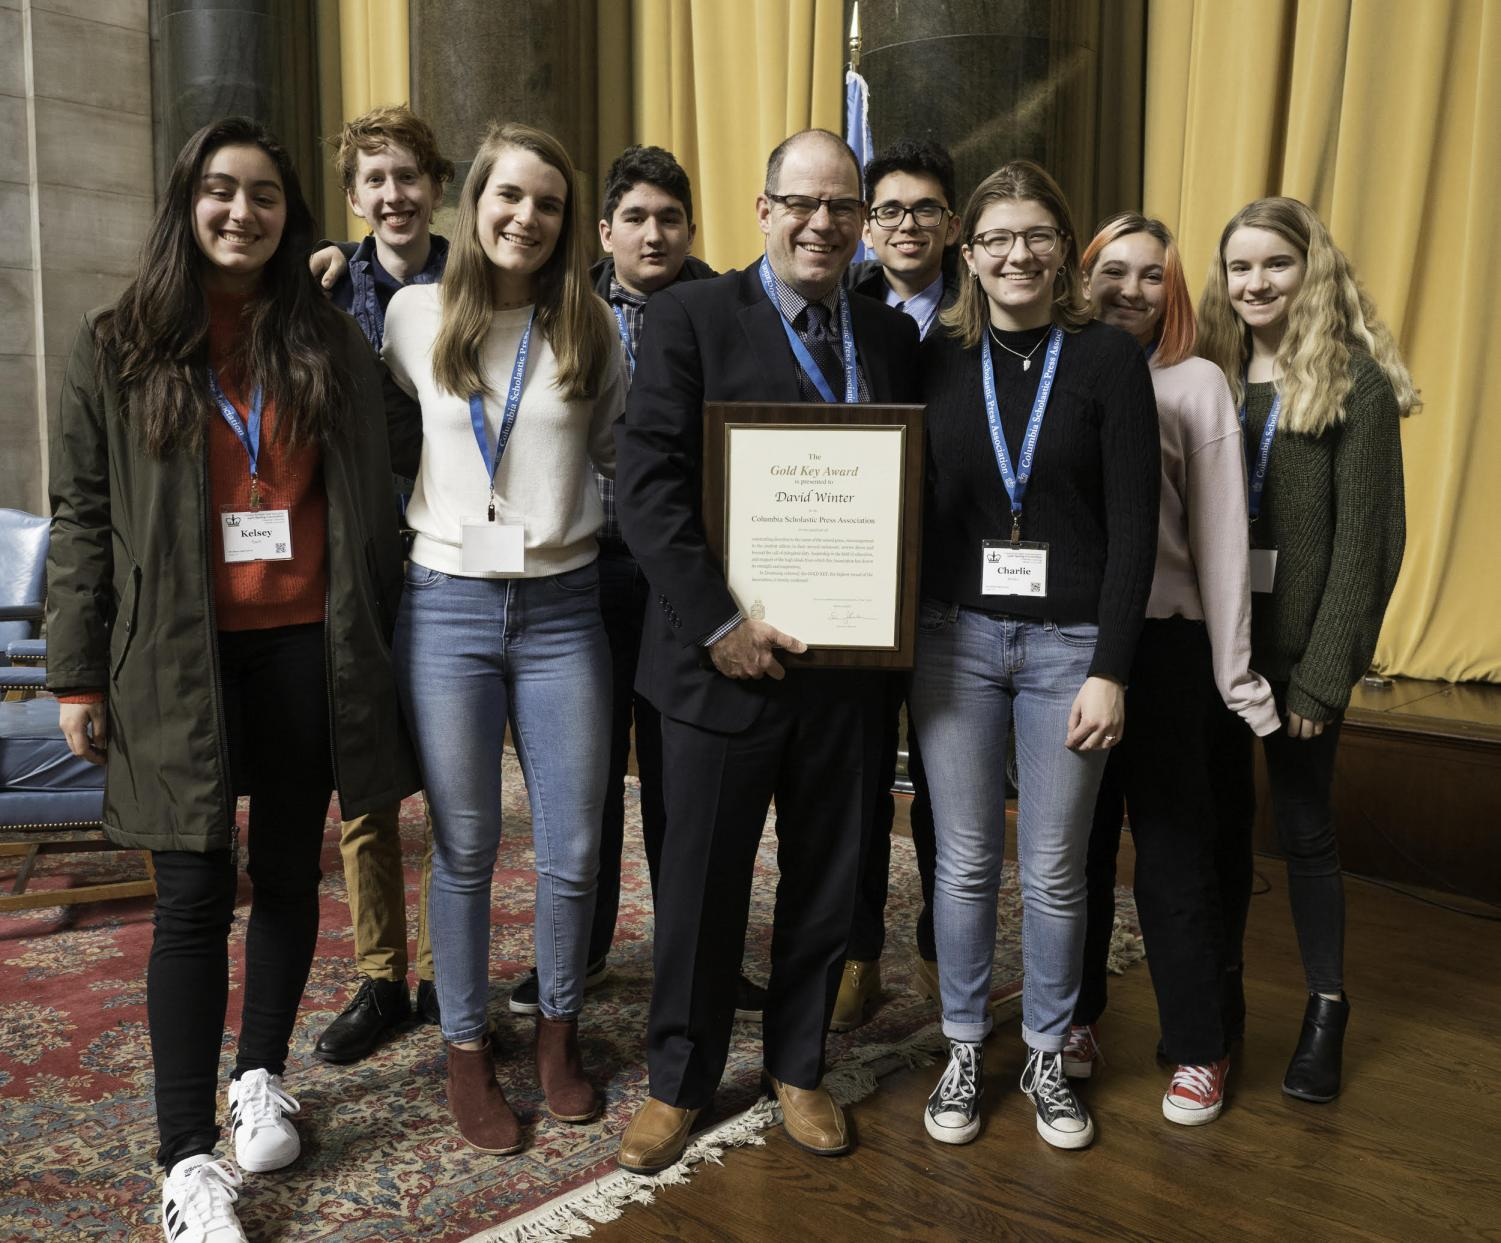 The McCallum delegation at the Columbia Scholastic Press Association pose for a pic after the adviser award's luncheon in the Low Library rotunda. Photo by Mark Murray.